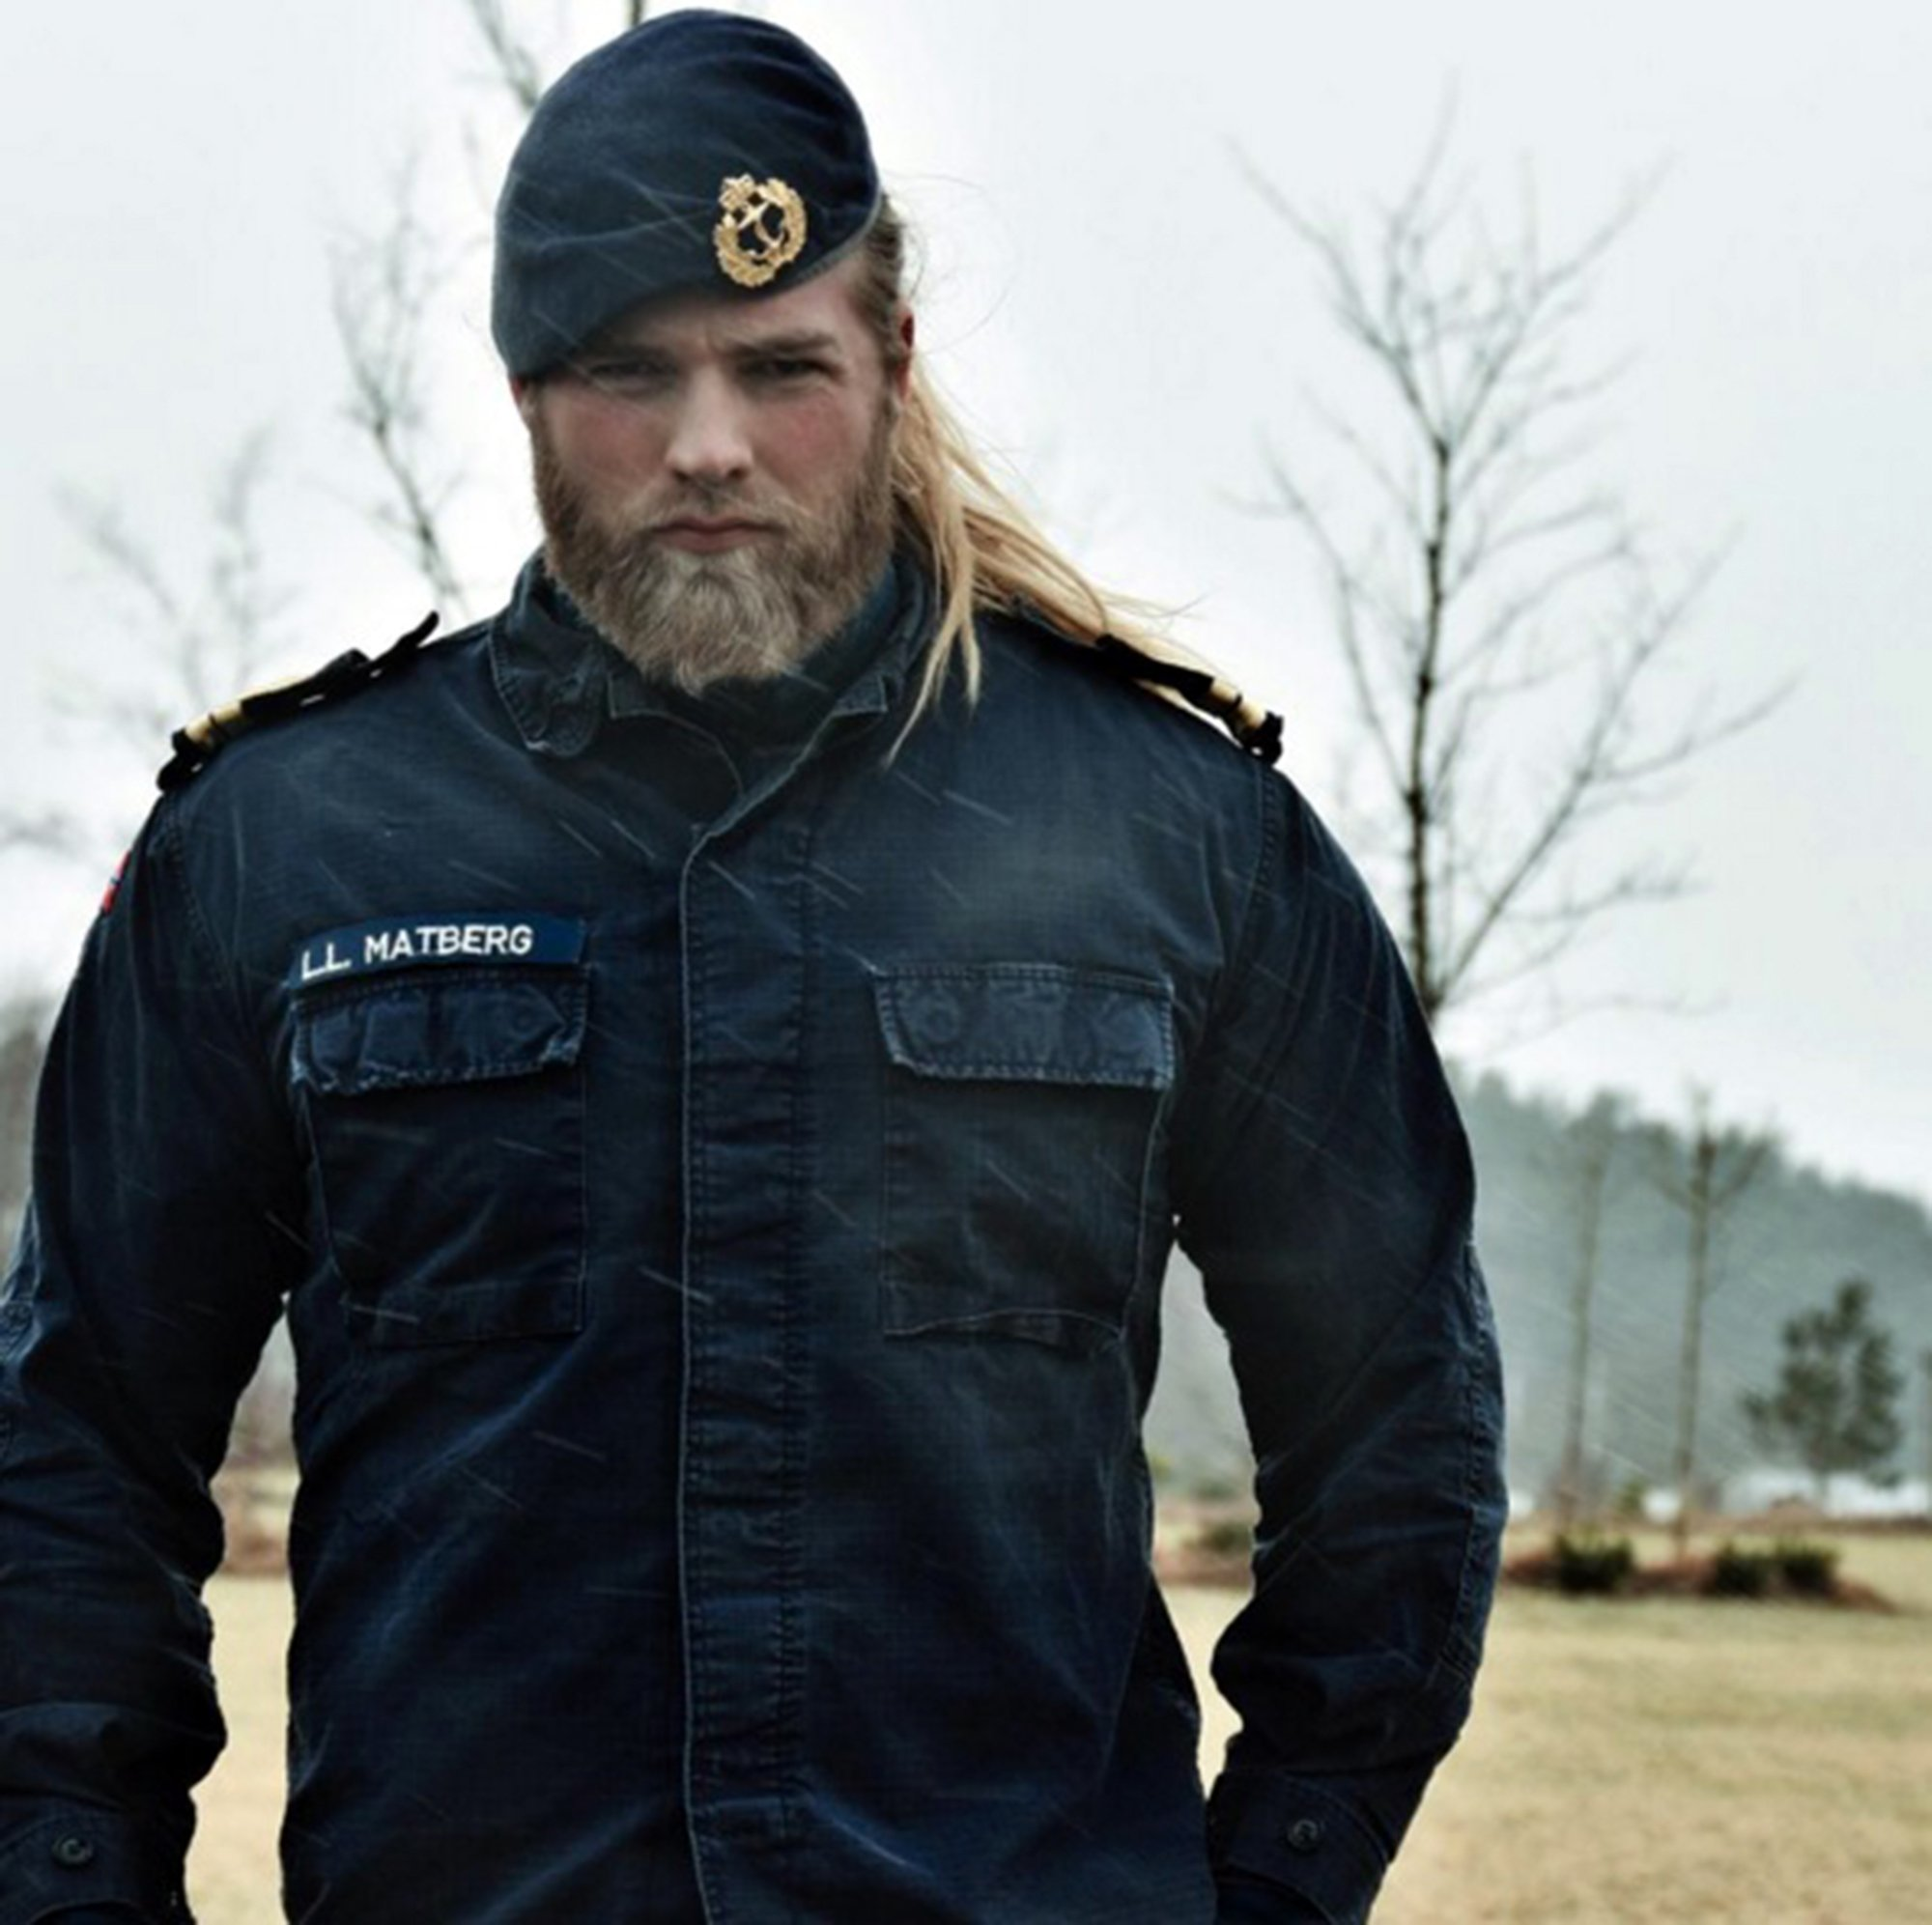 "Pic shows: Lasse Matberg. Meet the modern day Norwegian Viking that is capturing hearts the world over on Instagram. Lasse Matberg, 30, is a Royal Norwegian Navy who would give Thor a run for his money with his beefy build, manly beard and long blonde hair. The modern-day Viking is racking up Instagram followers at an incredible pace. Matberg, from the south-western Norweigan city of Stavenger went from 500 followers to 100,000. His rise in popularity might have something to do with him checking all the boxes in his photos. There is everything from him cuddling a puppy to cutting wood in the forest with the caption: ""Hit the #gym? You mean chopping #wood? #norwegian #lifestylebrand."" And it seems that In short his long blonde hair, love for animals and bulging naturally built muscles are hitting the spot. Matberg recently spoke about the comments he received on his Instagram account. He said:""They want to marry me or ask me to make them pregnant."" User ha_karim wrote: ""You look like an angel."" Whilst rubidiopotasio commented: ""Are you from this world??? You're an Asgardian [an inhabitant of the fictional realm of Asgard from the Marvel Comics universe], aren't you?"" Matberg is the latest sensation being obsessed over by netizens. Other recent targets include convict-turned model Jeremy Meeks and Harry Potter actor who played Neville Longbottom and recently grew quite splendidly out of his awkward puppy fat stage. (ends) ¿¿¿¿¿¿¿¿¿¿"